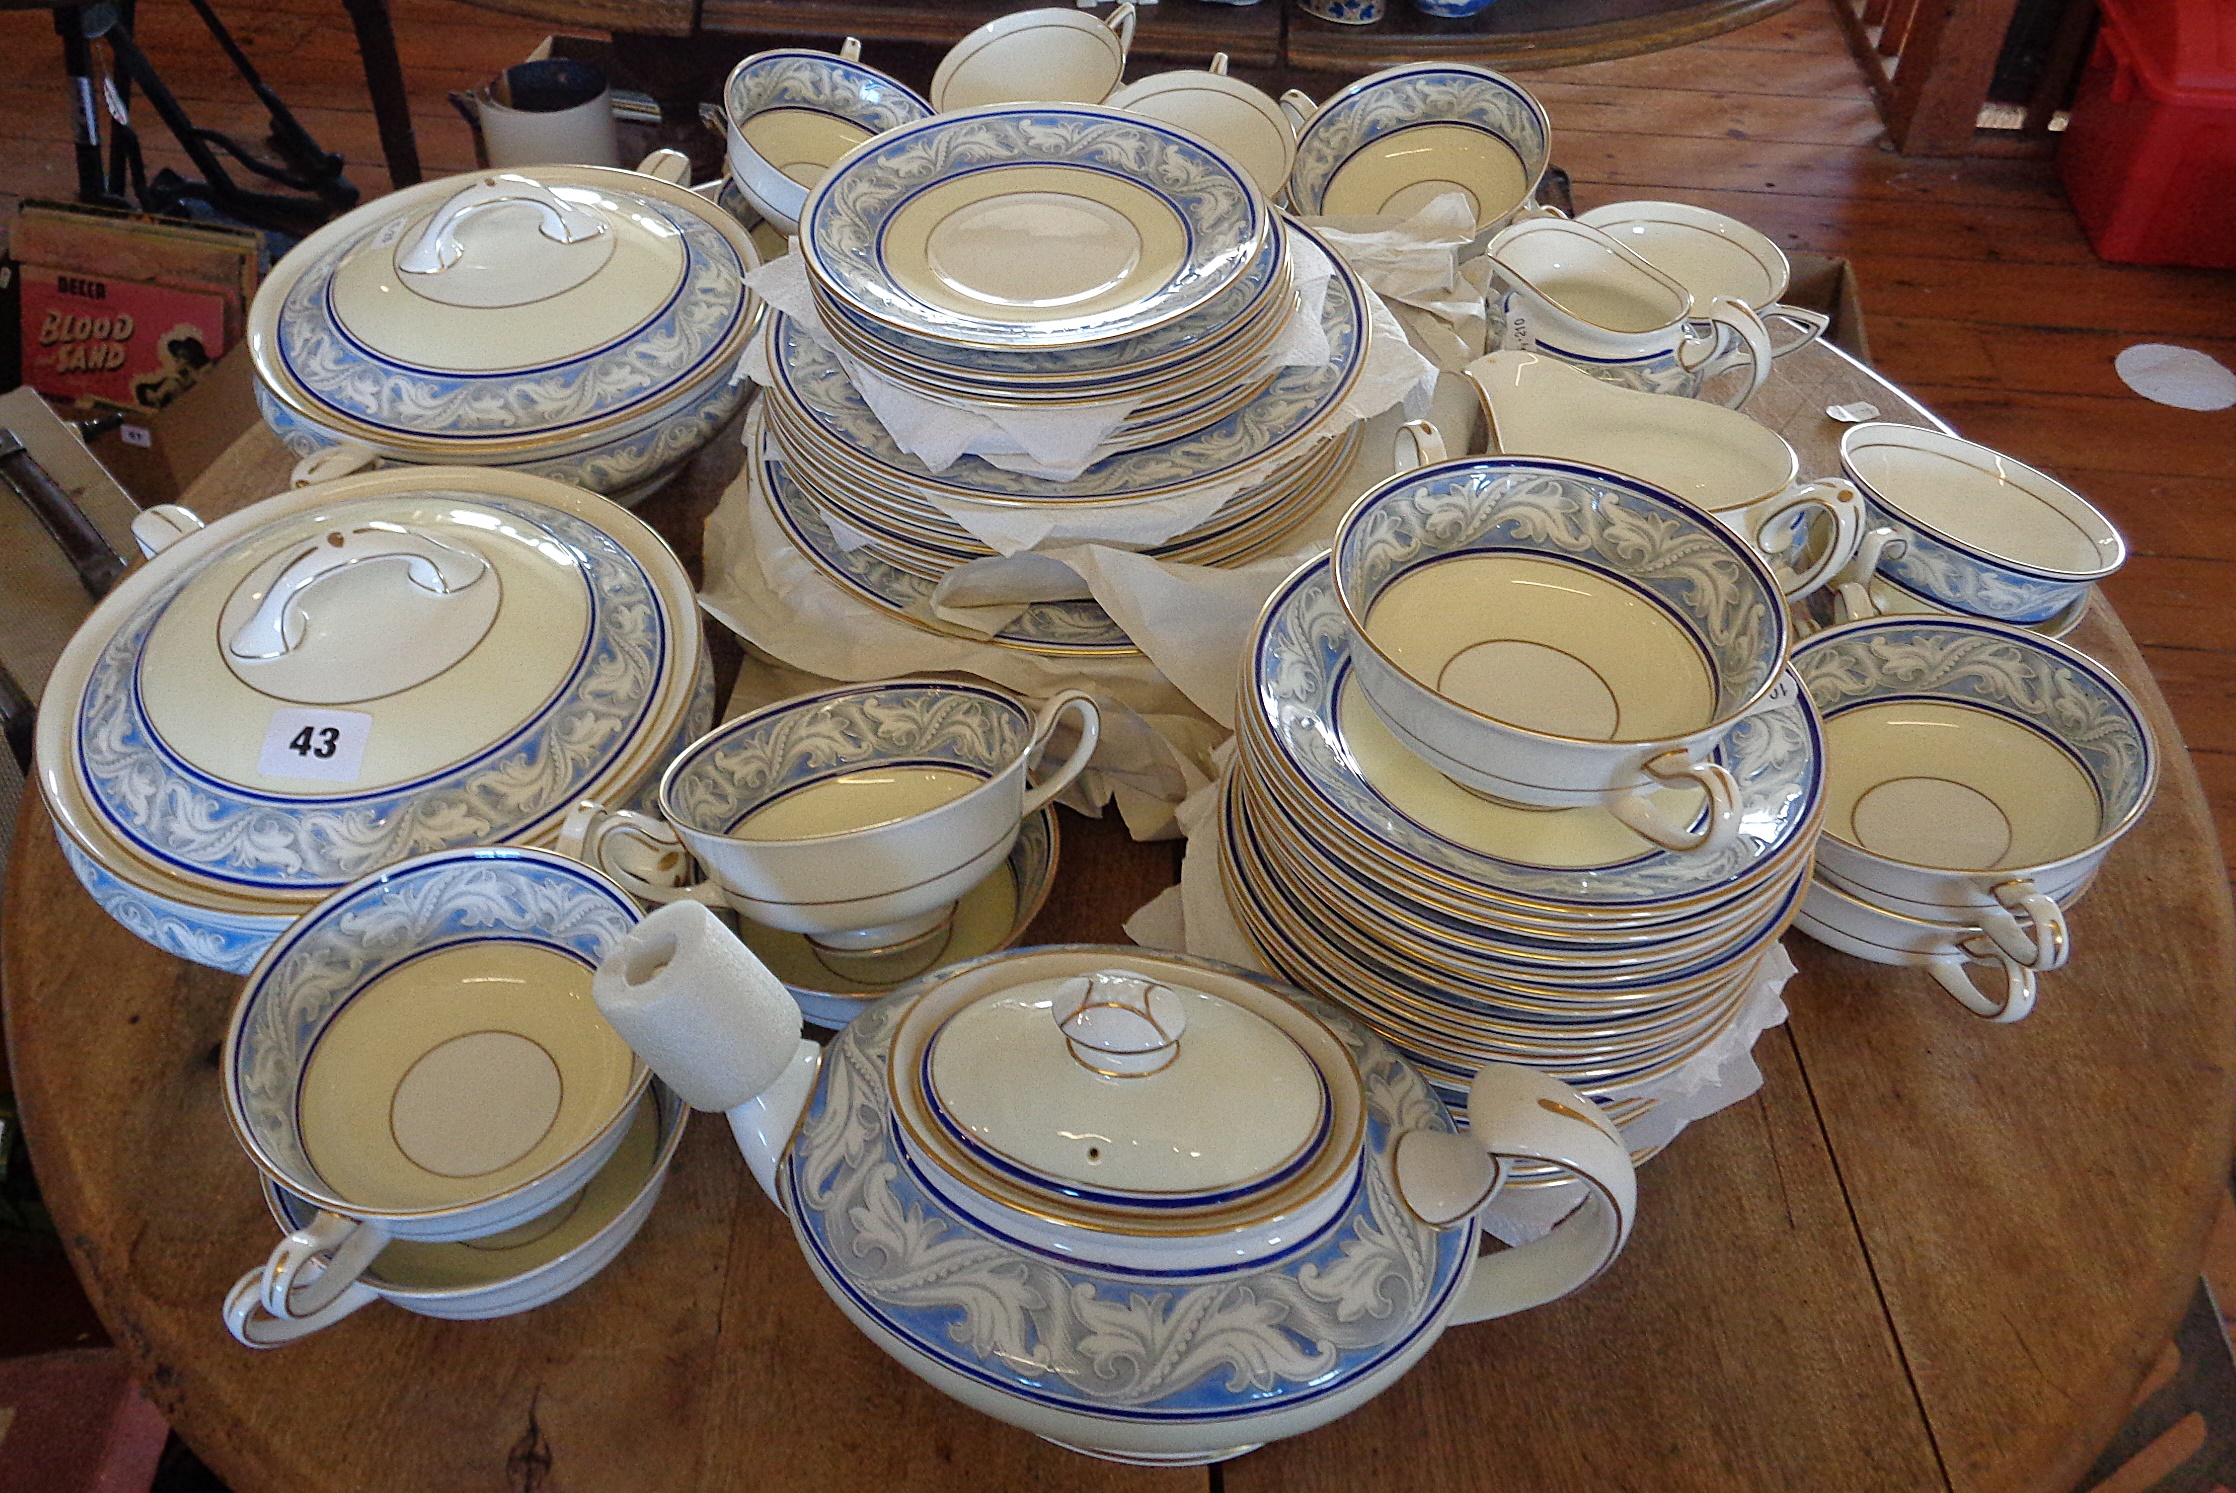 """Lot 43 - Extensive Royal Doulton """"Tewkesbury"""" china dinner and tea service, over 64 pieces, inc. two tureens,"""